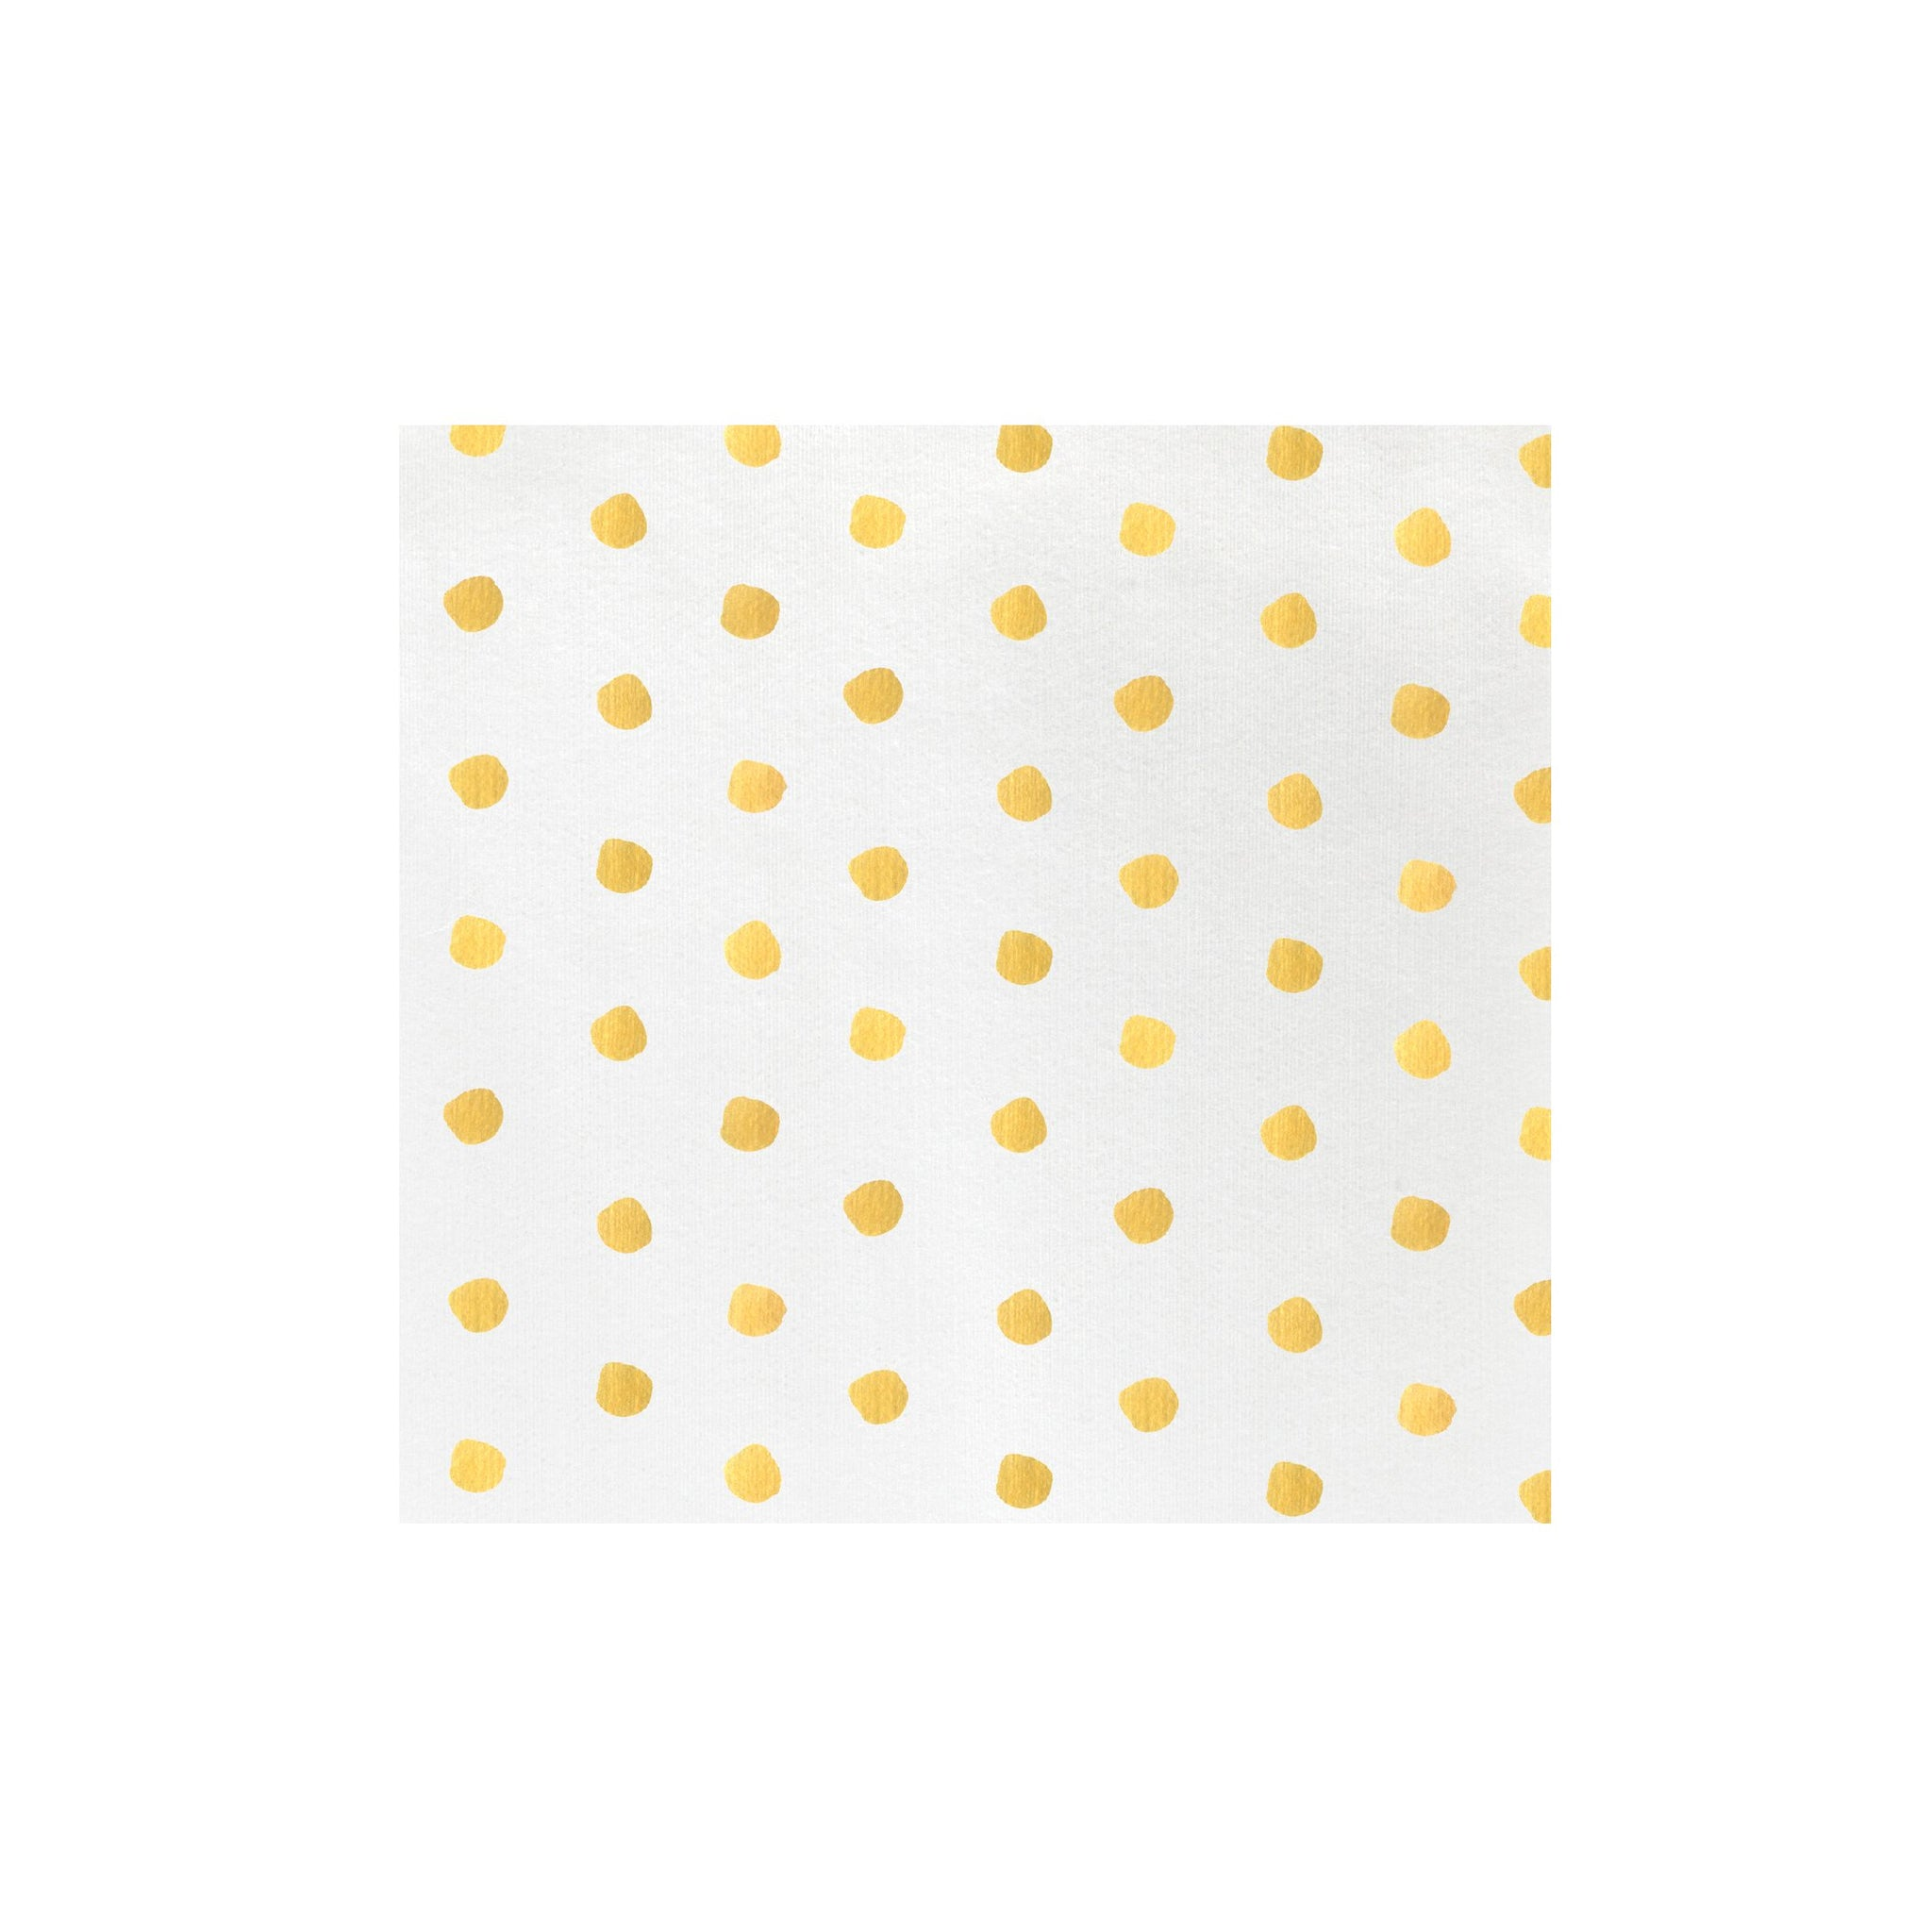 Papersoft Napkins Yellow Dot Dinner Napkins (Pack of 50)